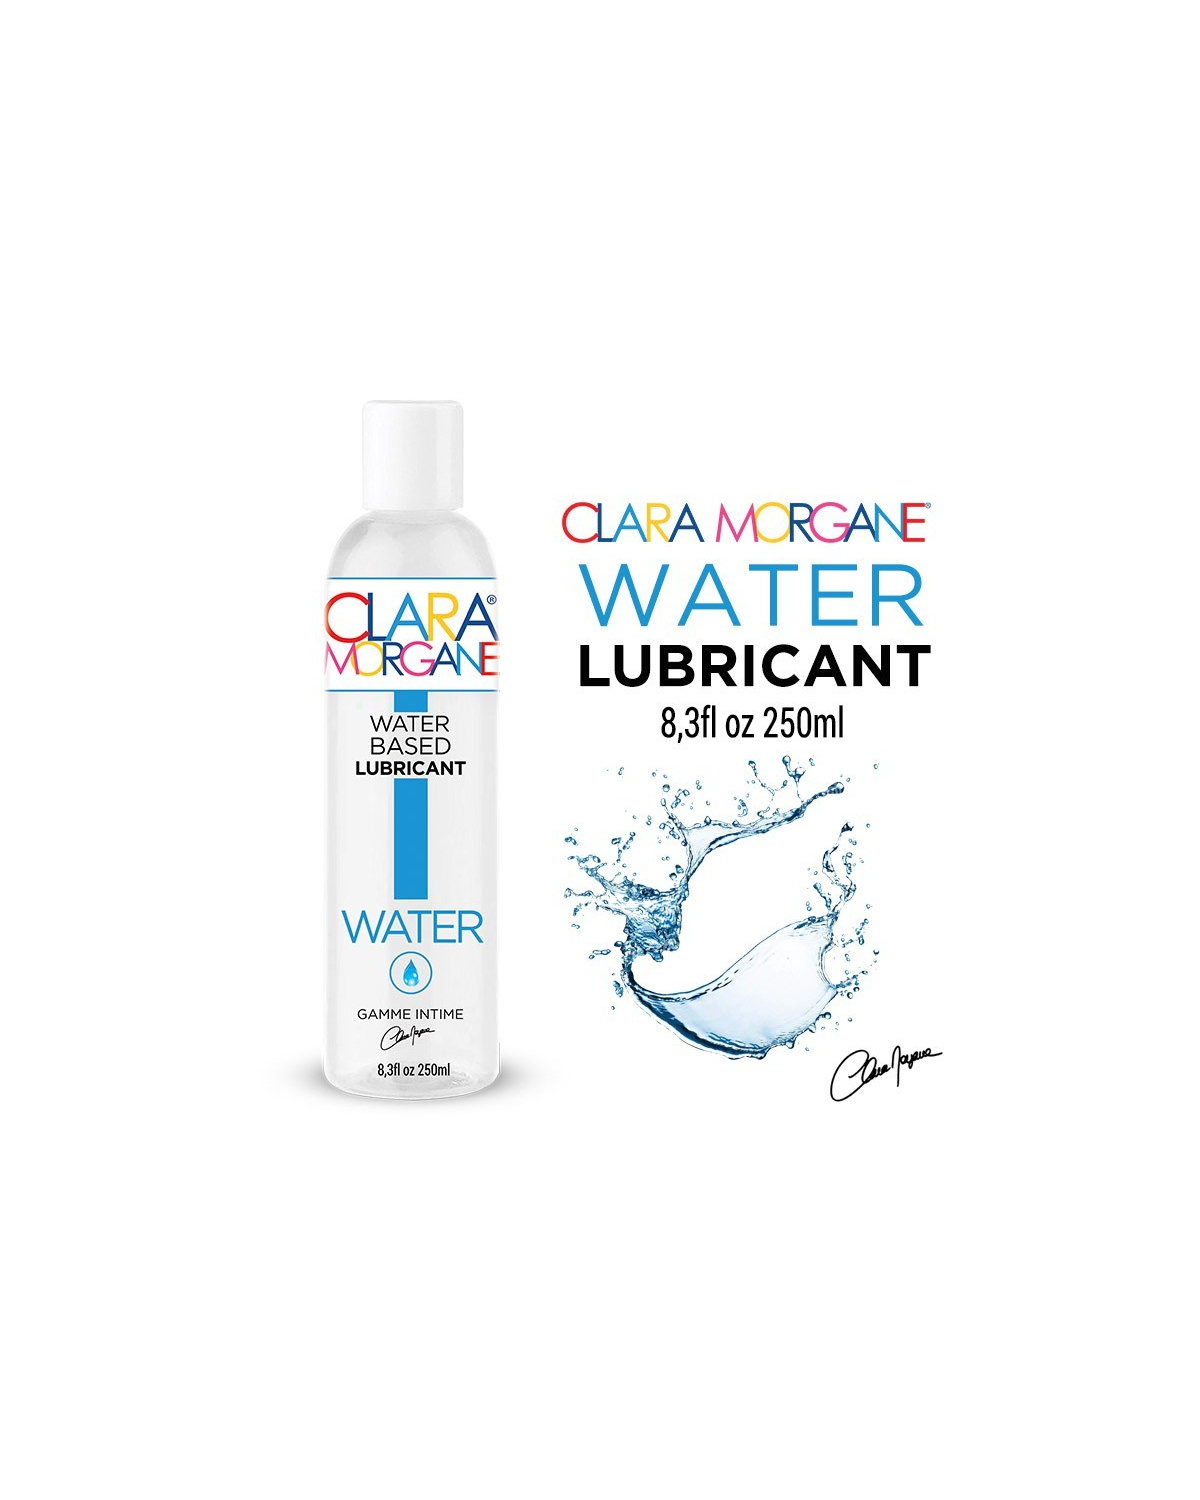 lubrifiant-Water-natural-clara-morgane-250ml-1